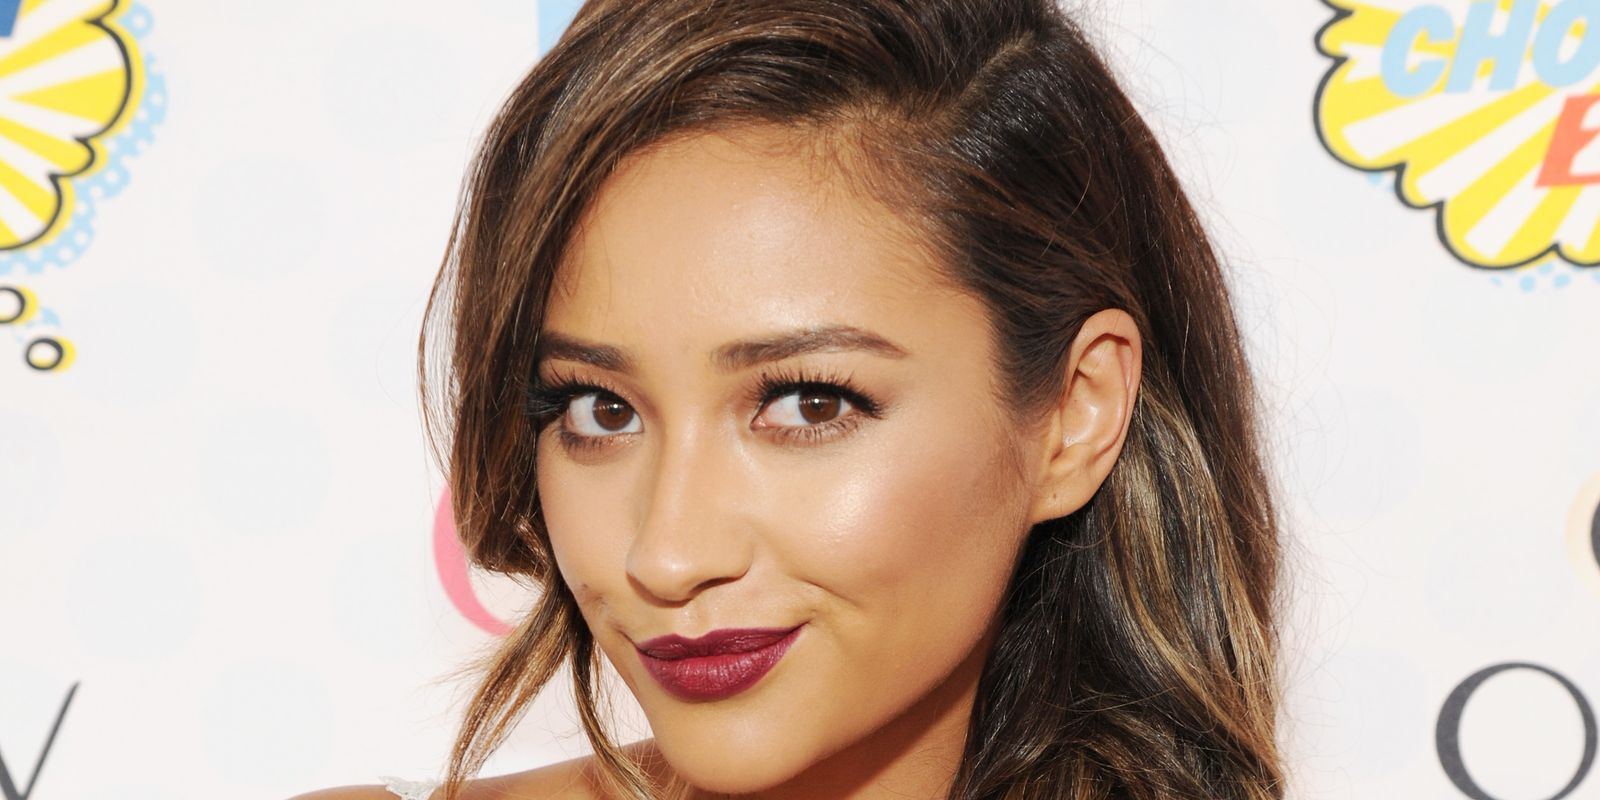 Shay Mitchell Teen Choice Awards 2014 Hair - Shay Mitchell Hair